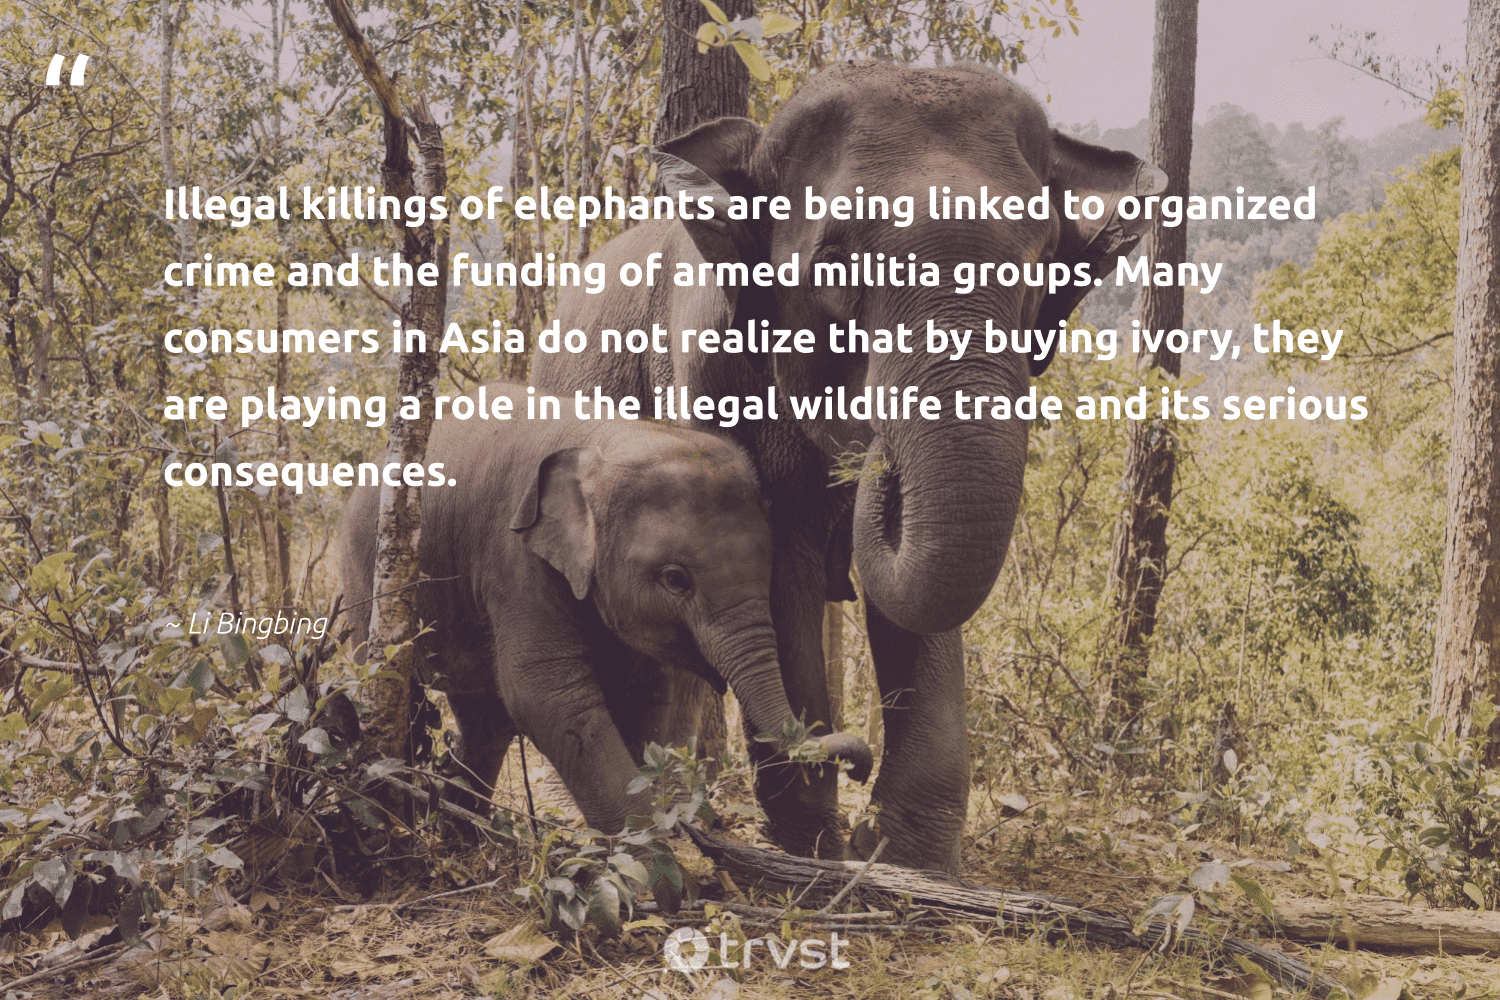 """""""Illegal killings of elephants are being linked to organized crime and the funding of armed militia groups. Many consumers in Asia do not realize that by buying ivory, they are playing a role in the illegal wildlife trade and its serious consequences.""""  - Li Bingbing #trvst #quotes #wildlife #elephants #animal #explore #nature #socialchange #animallovers #wildanimals #natural #ecoconscious"""